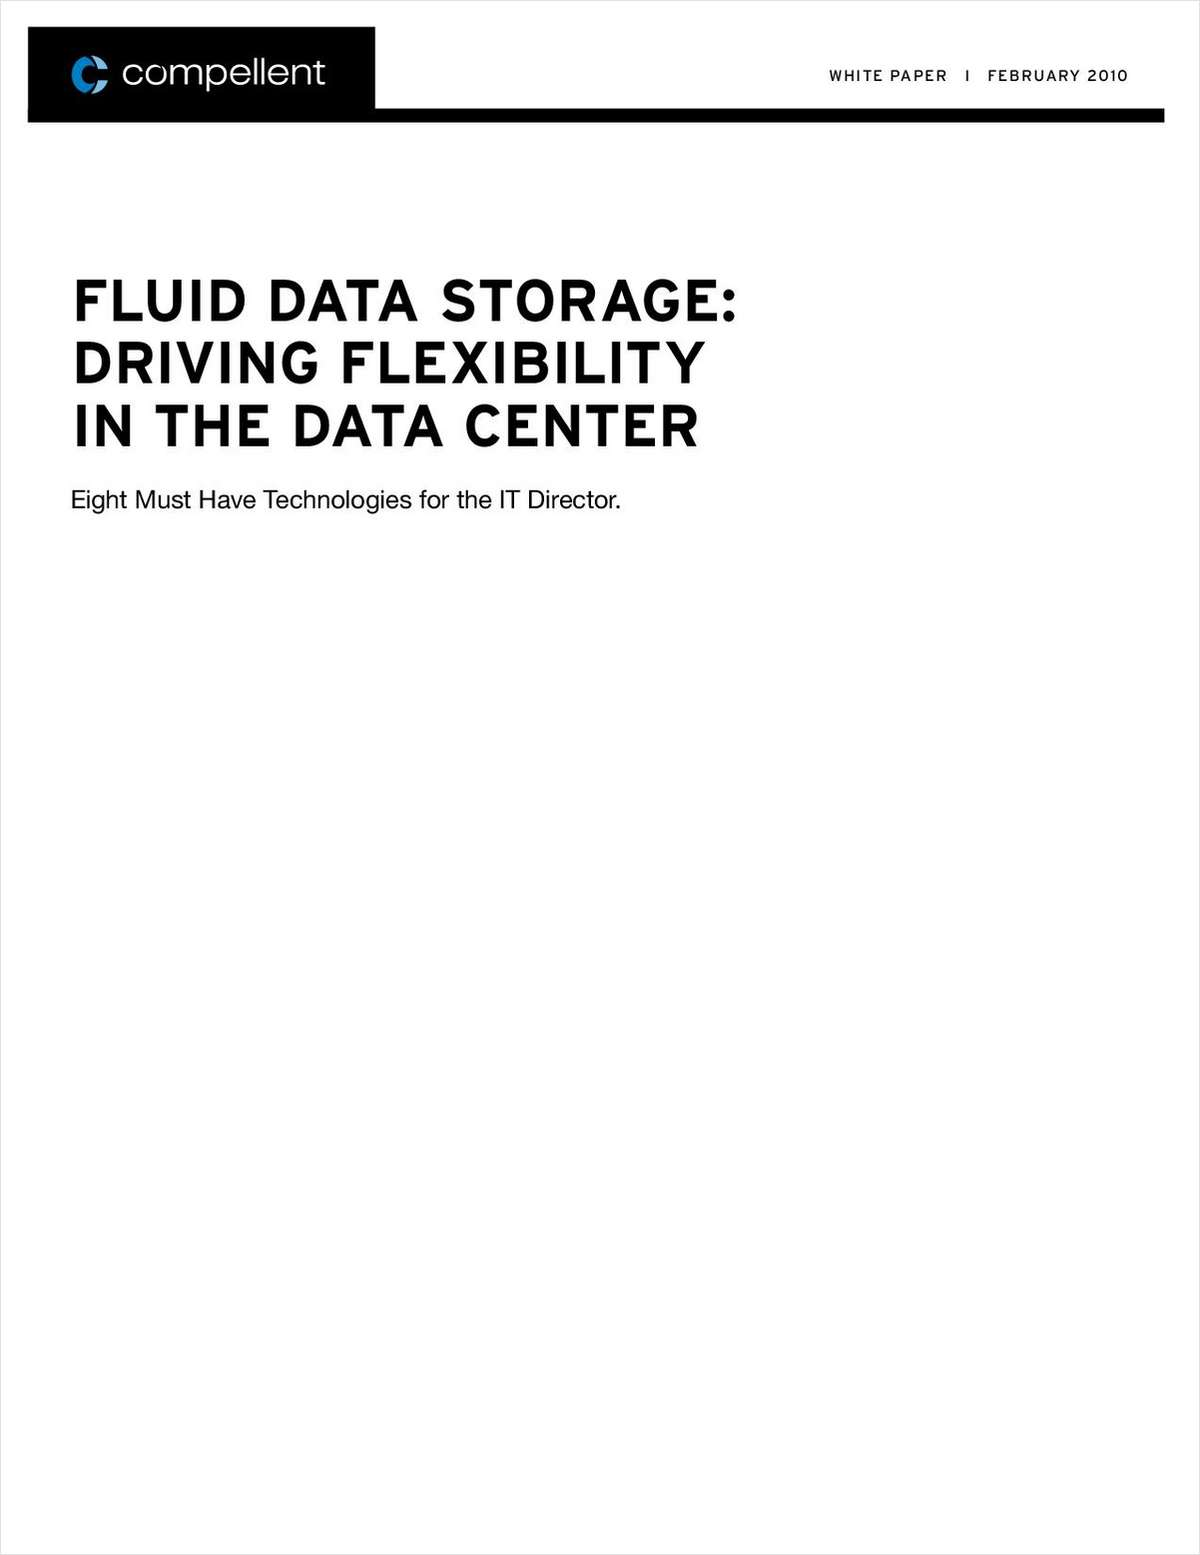 Fluid Data Storage Drives Flexibility in the Data Center